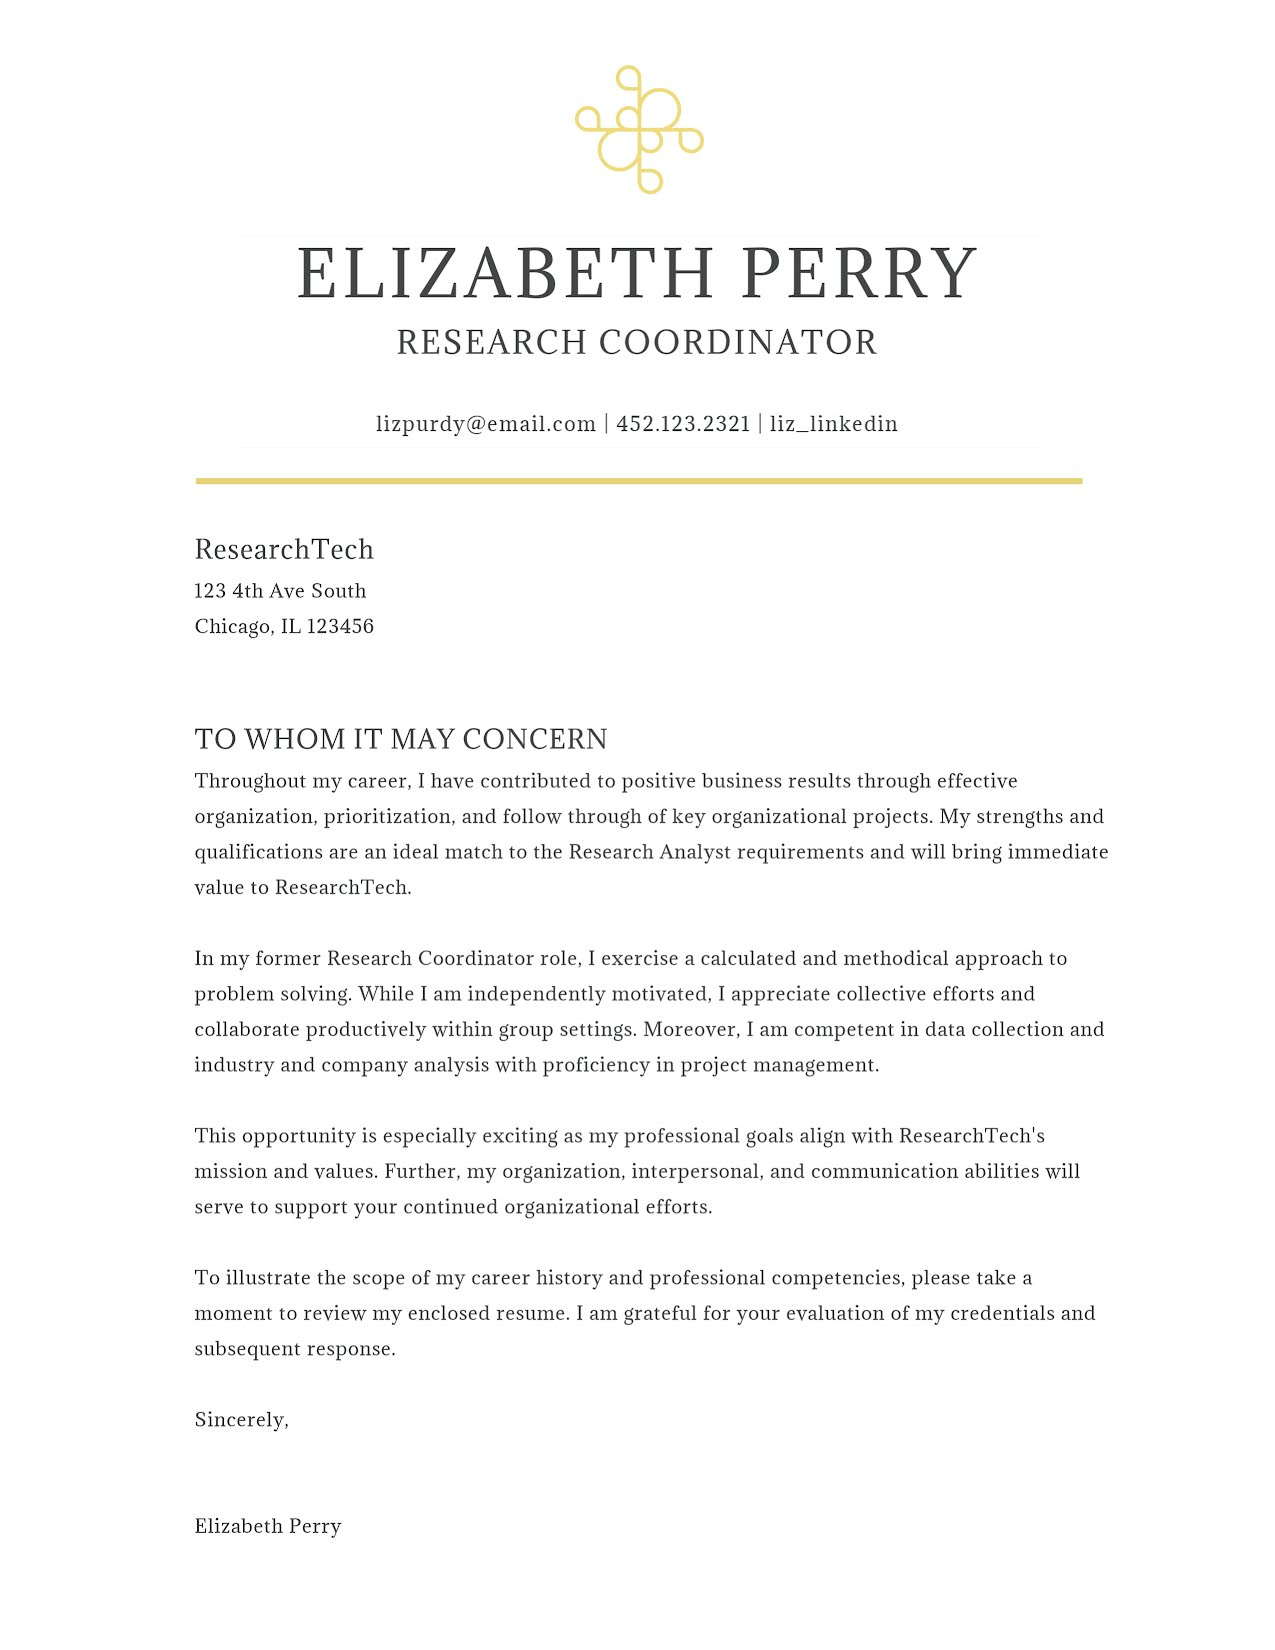 Elizabeth Perry - Cover Letter Template